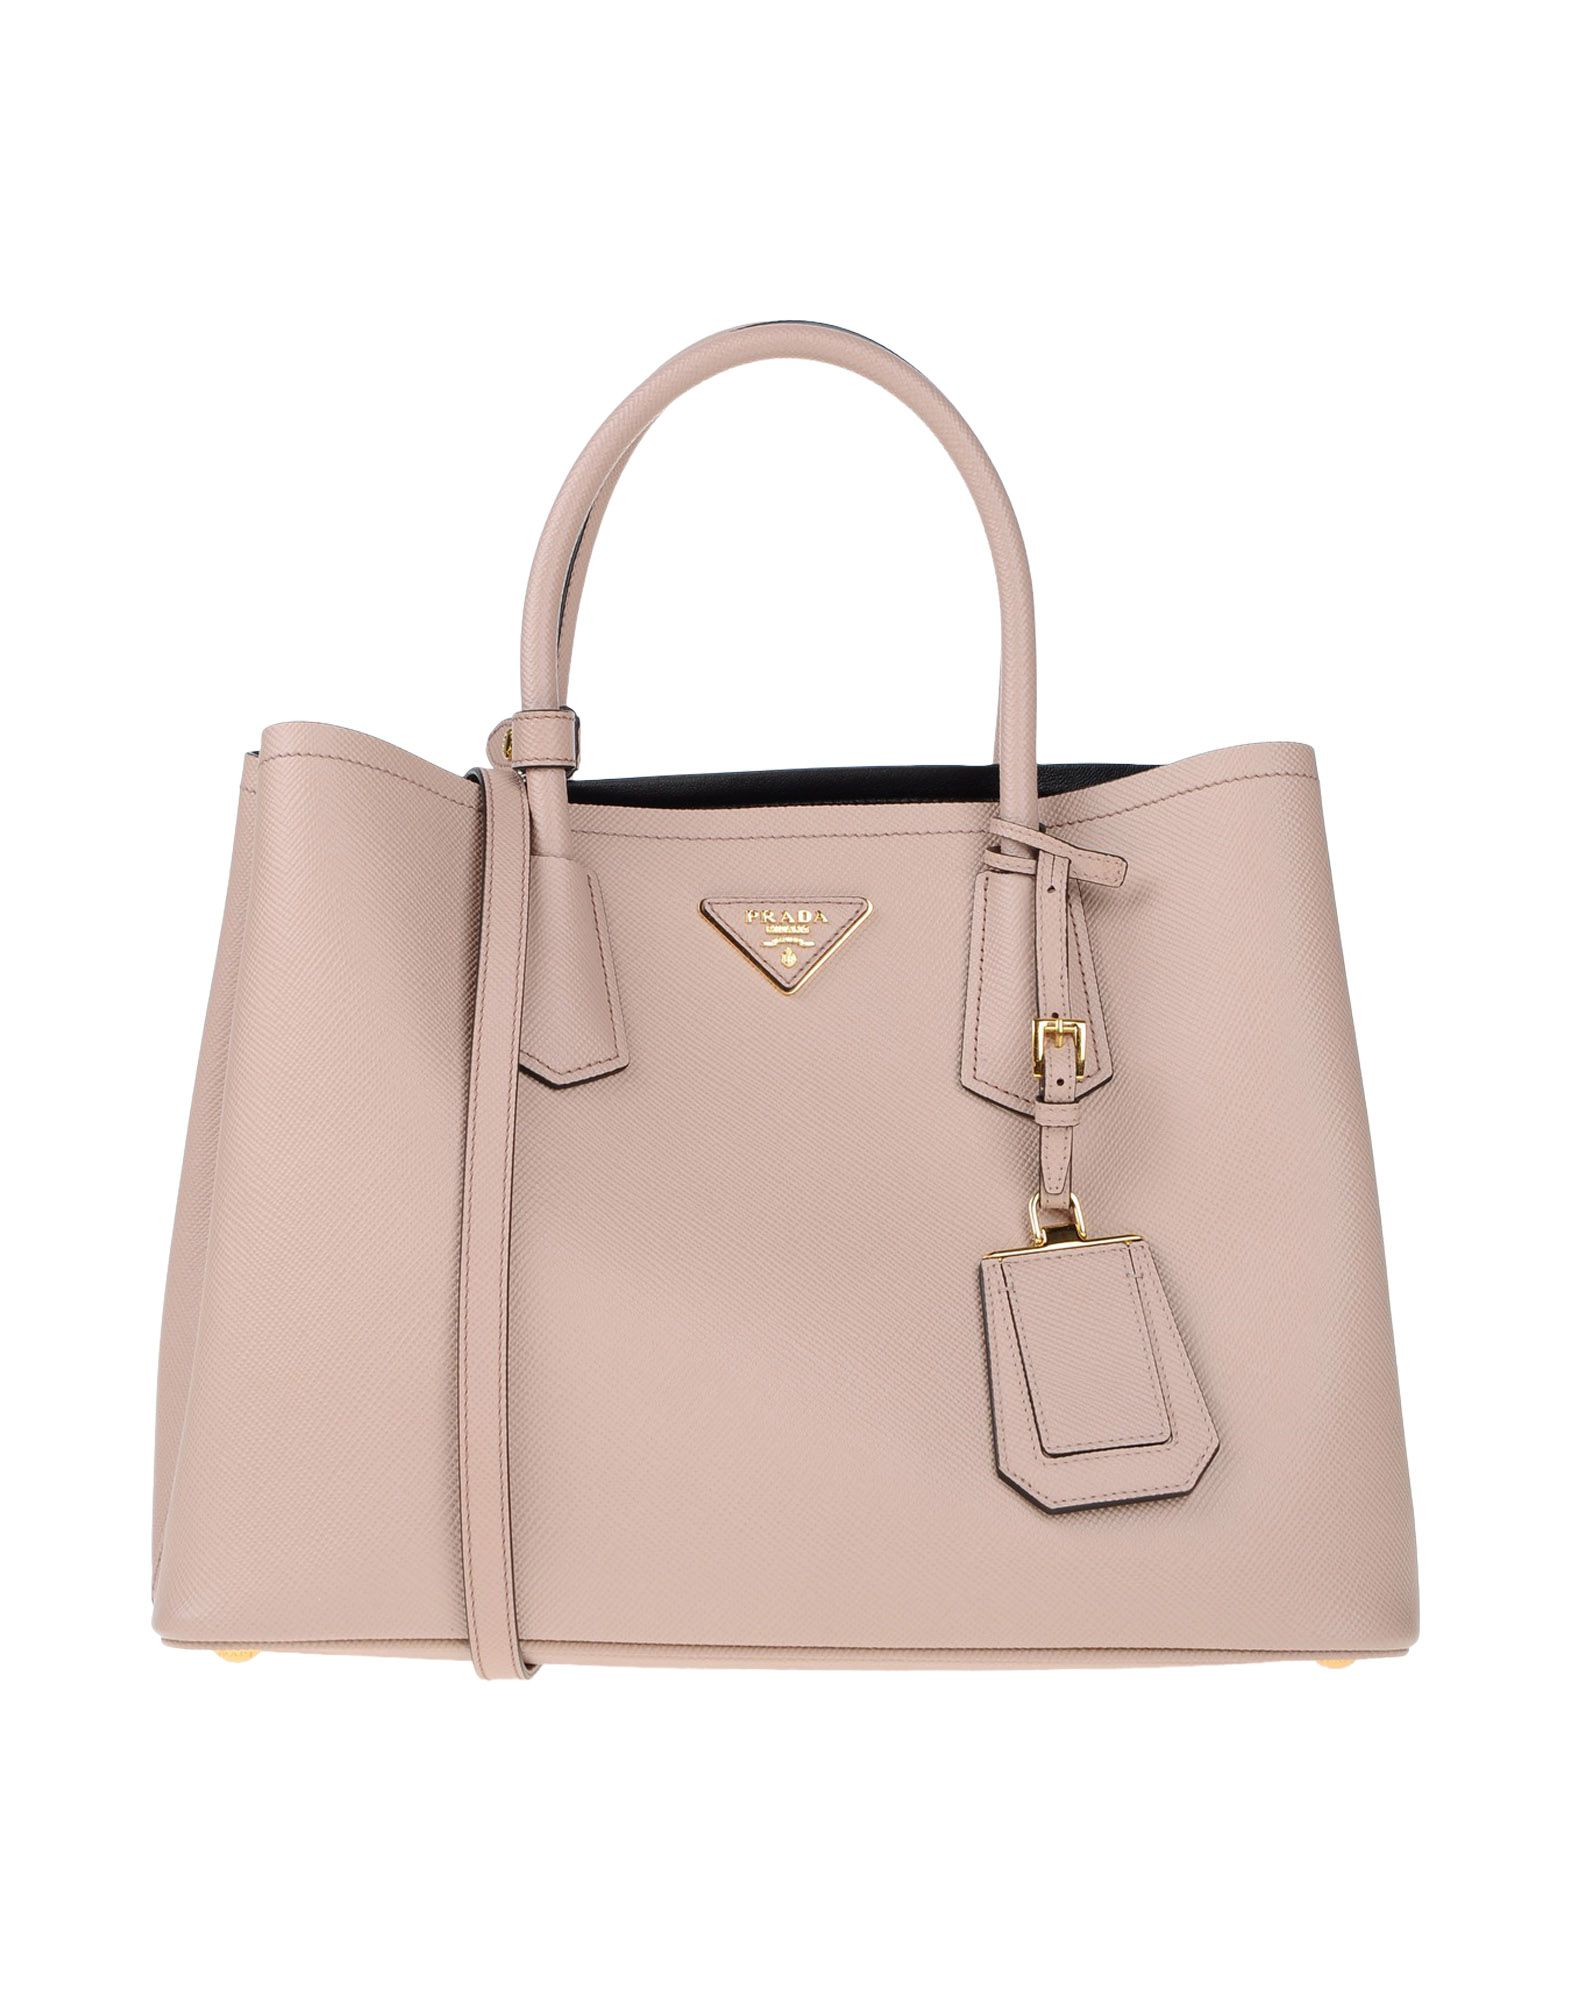 d815bc47e62374 Prada Bag Colors | Stanford Center for Opportunity Policy in Education